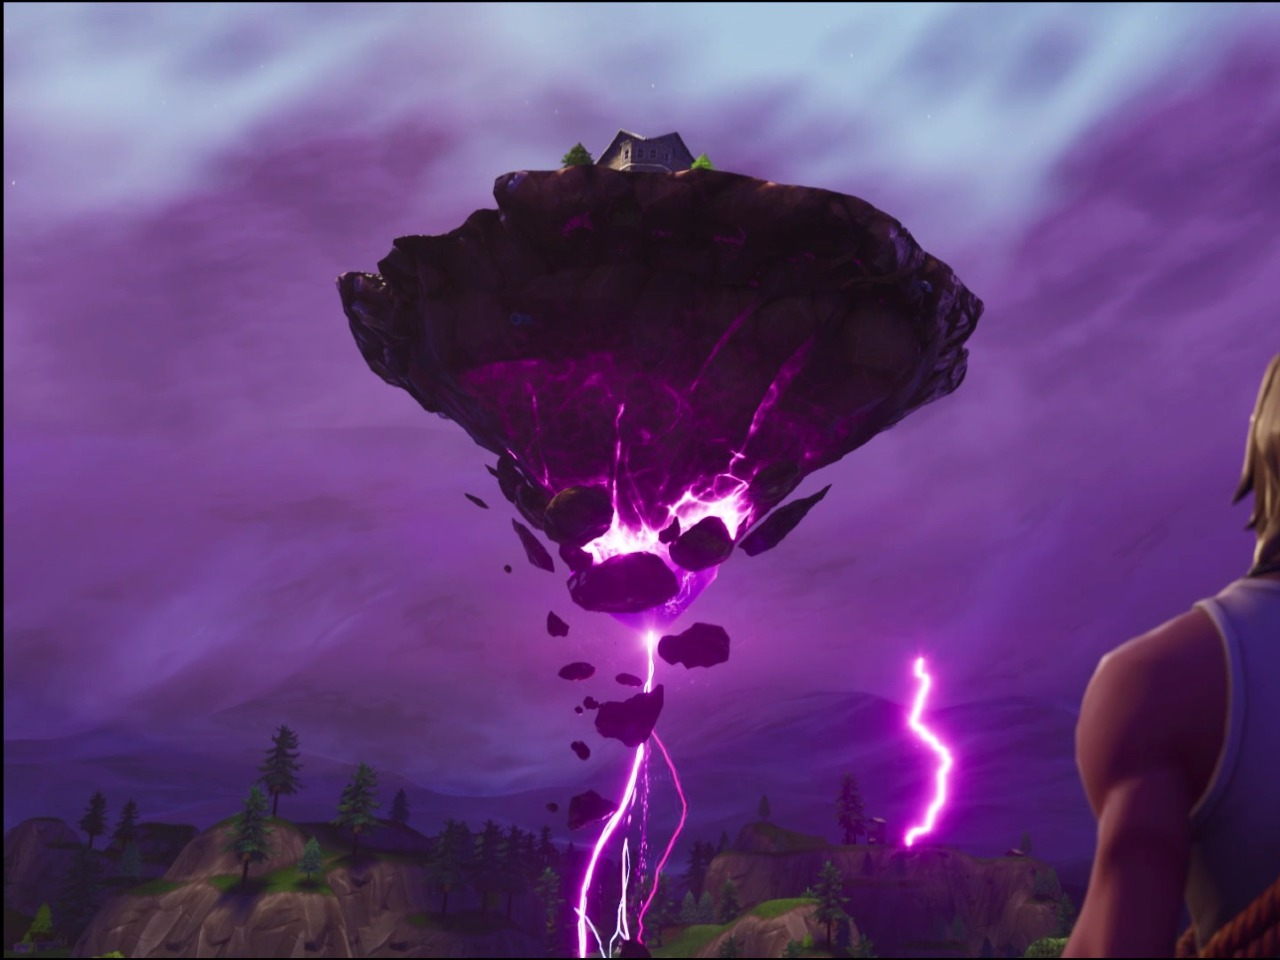 Download Galaxy Note 5 Galaxy S6 Edge Full Hd Stock: Download Fortnite Xbox One Gameplay 2248x2248 Resolution